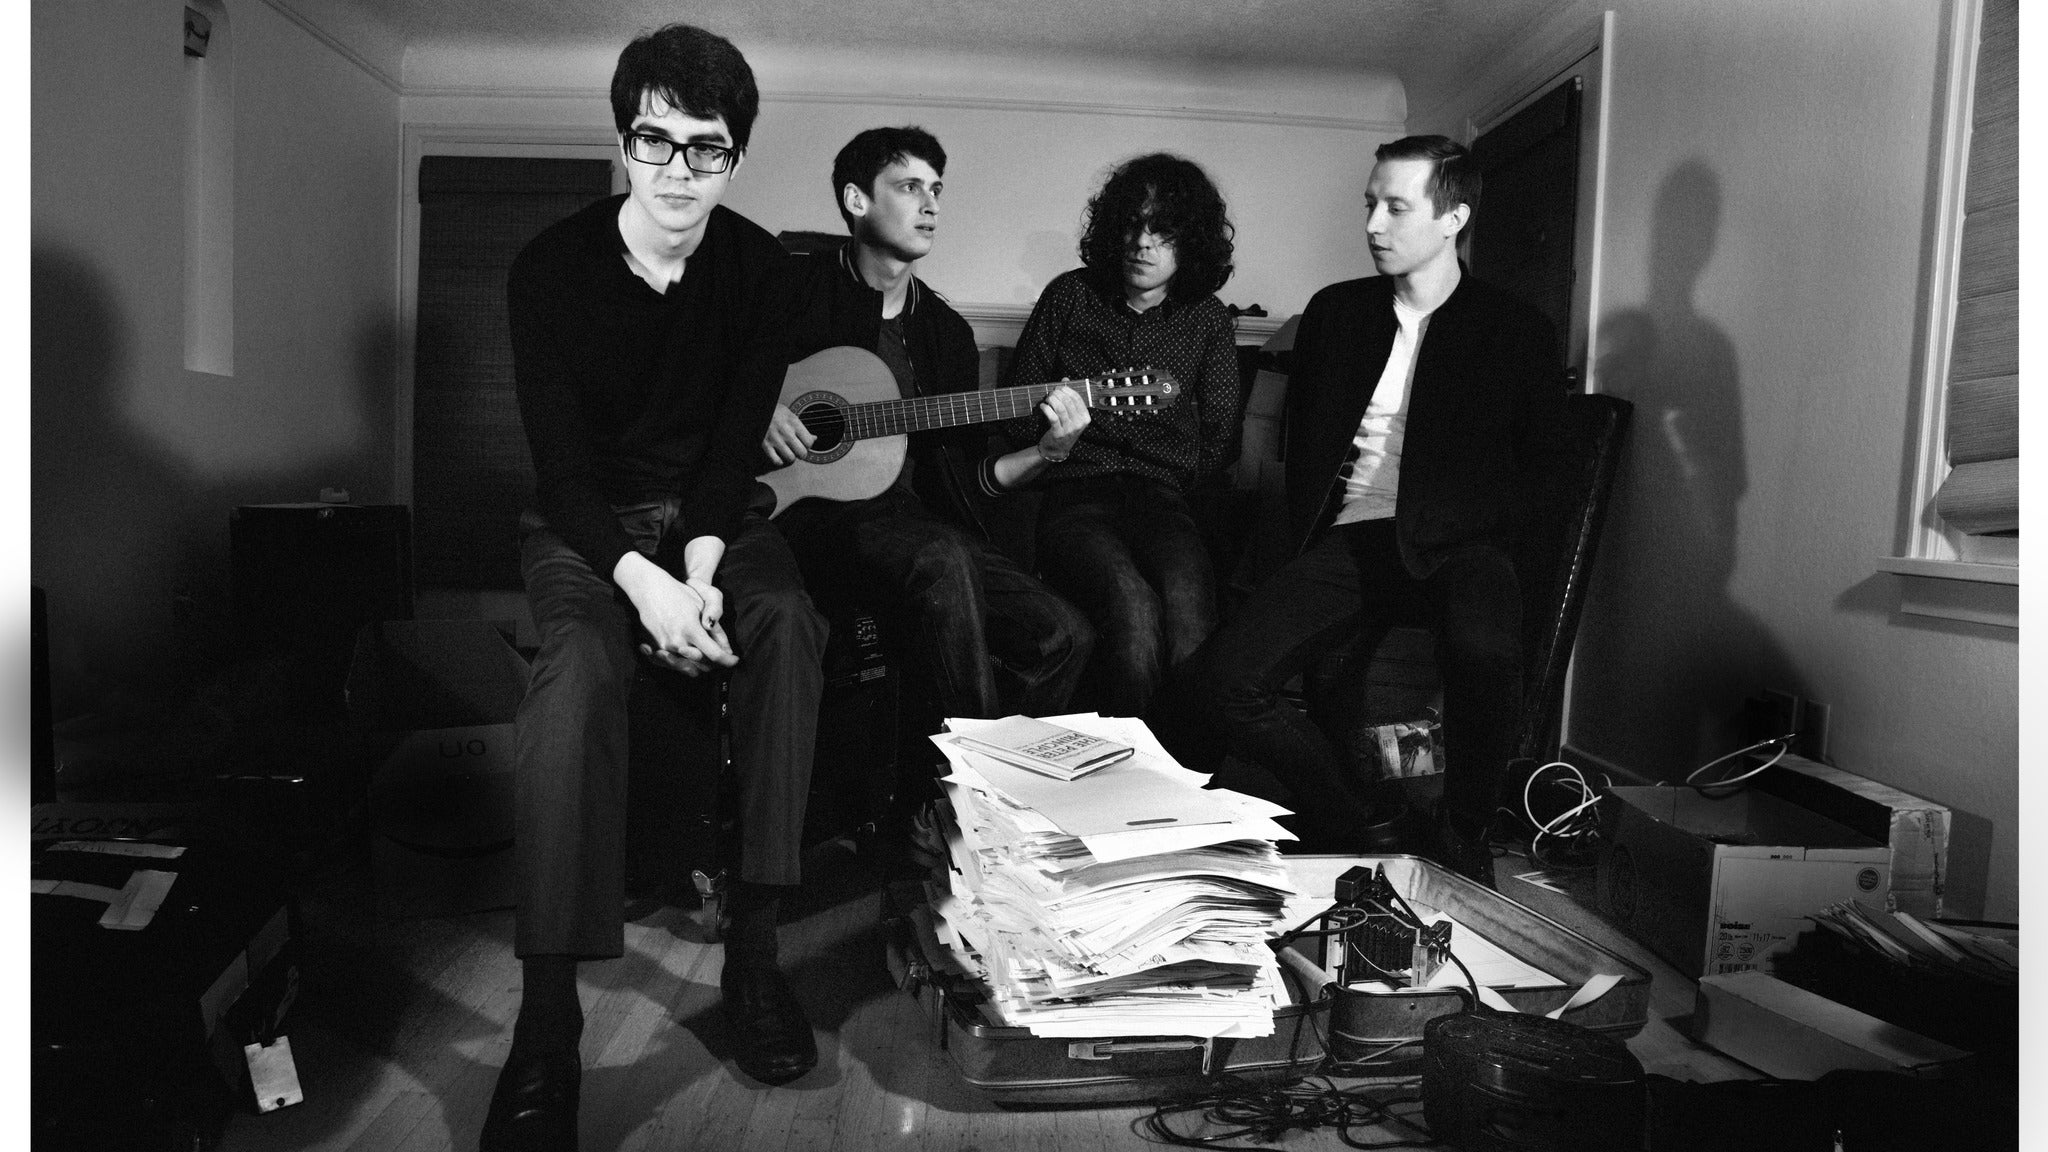 88.5 FM Presents - Car Seat Headrest at The Wiltern